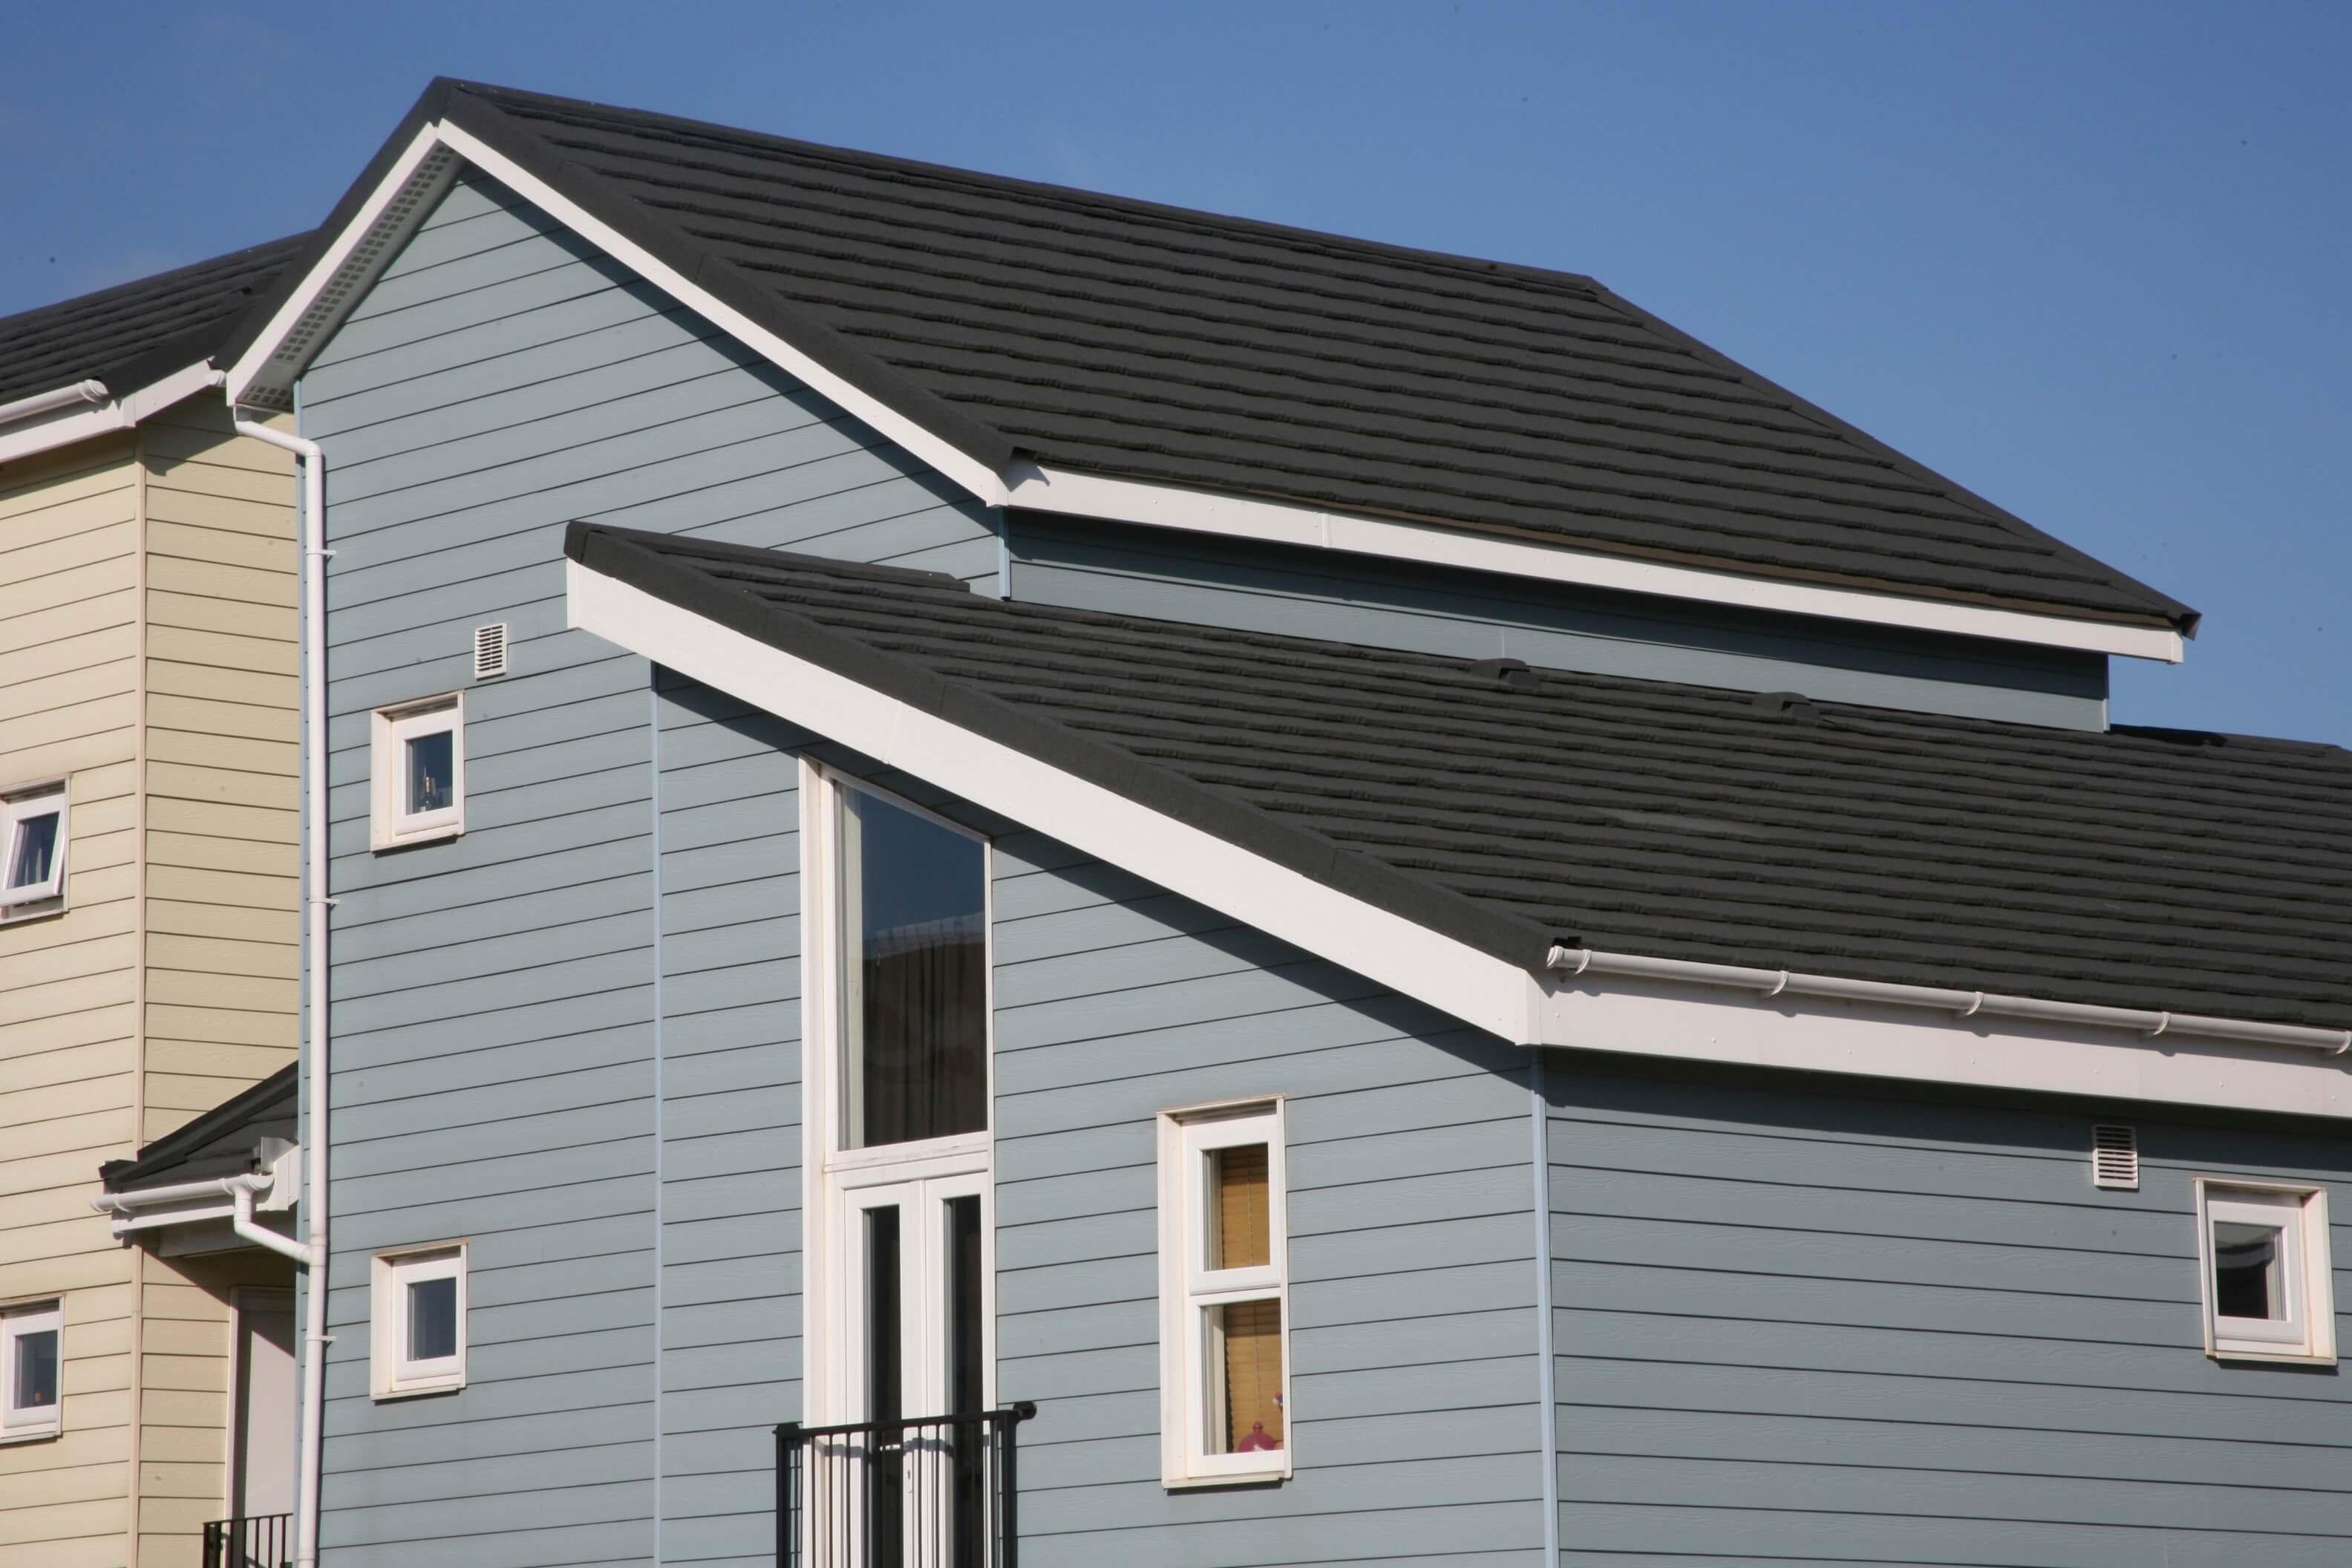 Metrotile Lightweight Roofing Slate in Charcoal on New Build Redrow Homes